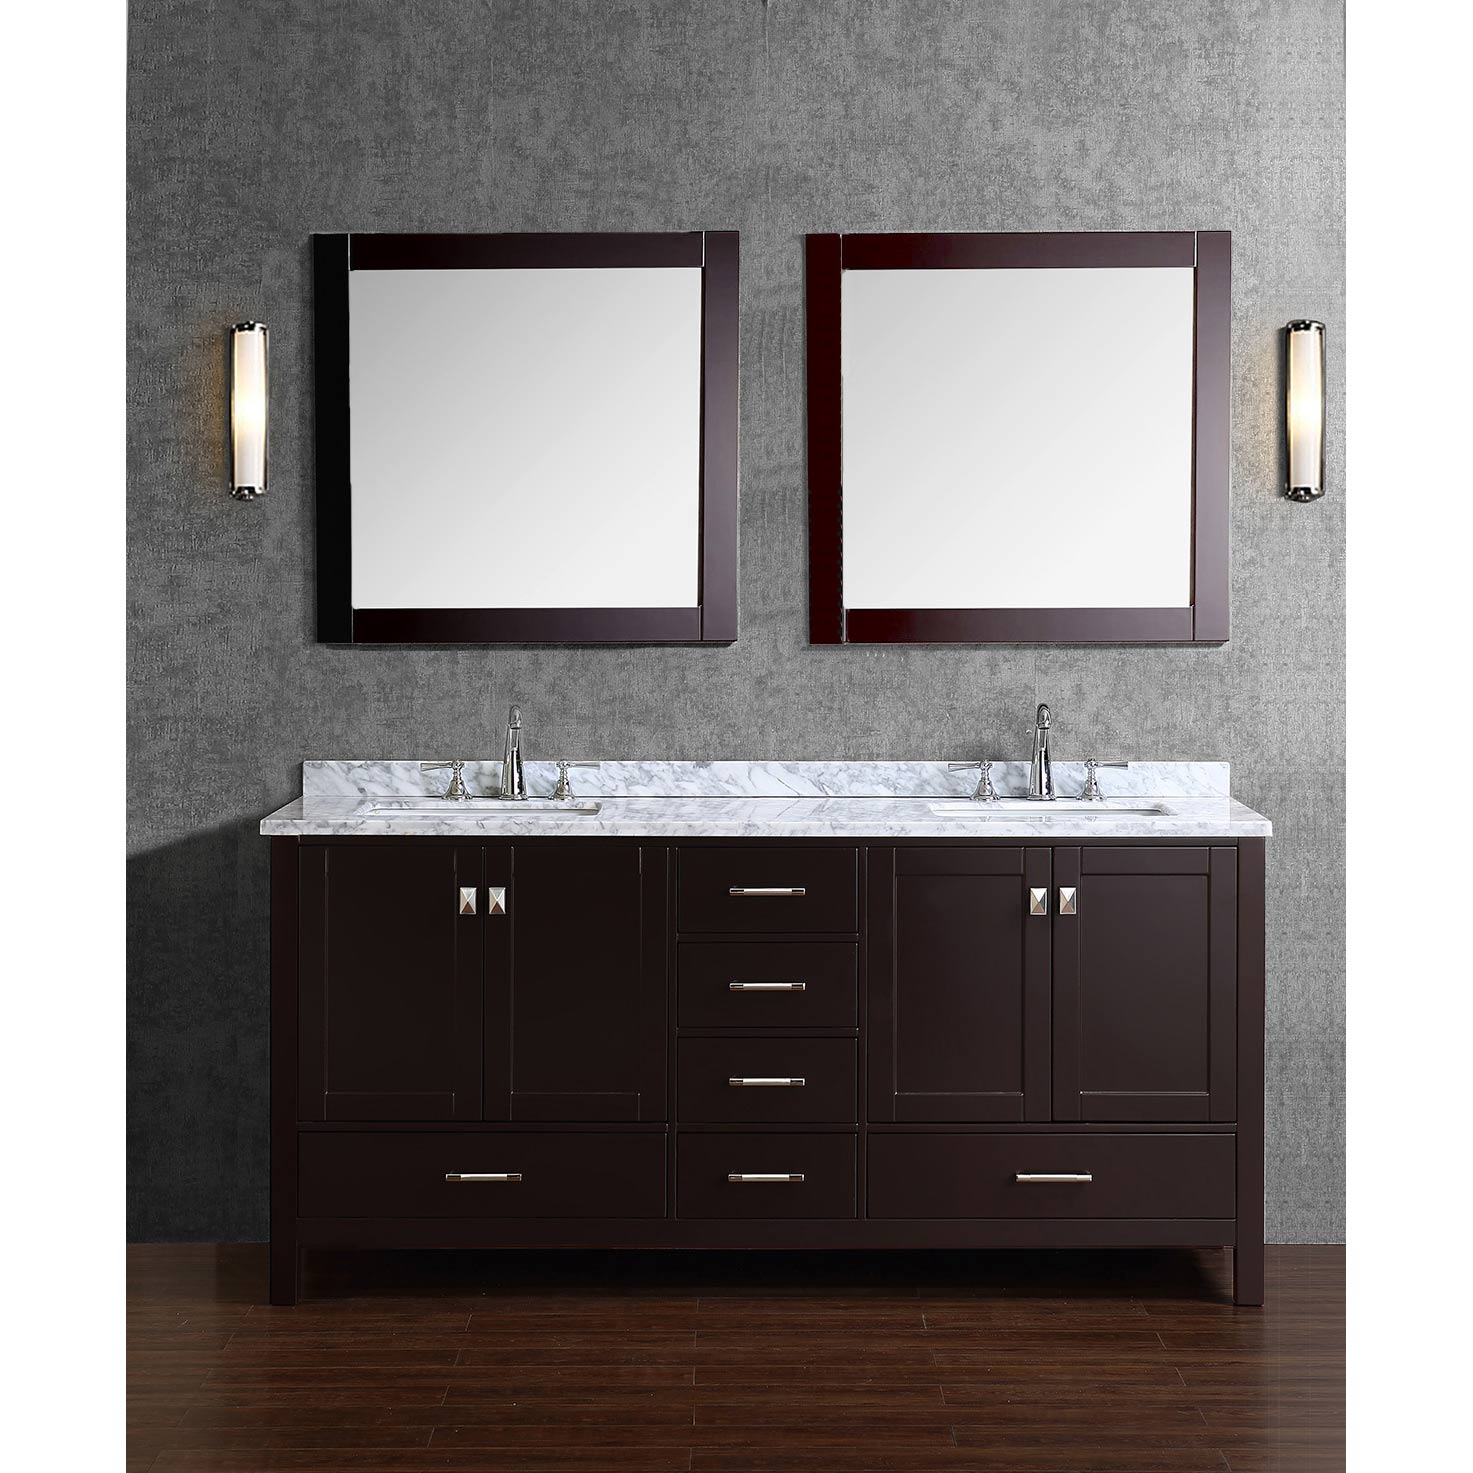 Amazing Buy Vincent 72 Inch Solid Wood Double Bathroom Vanity In Espresso Hm regarding Dark Bathroom Vanity